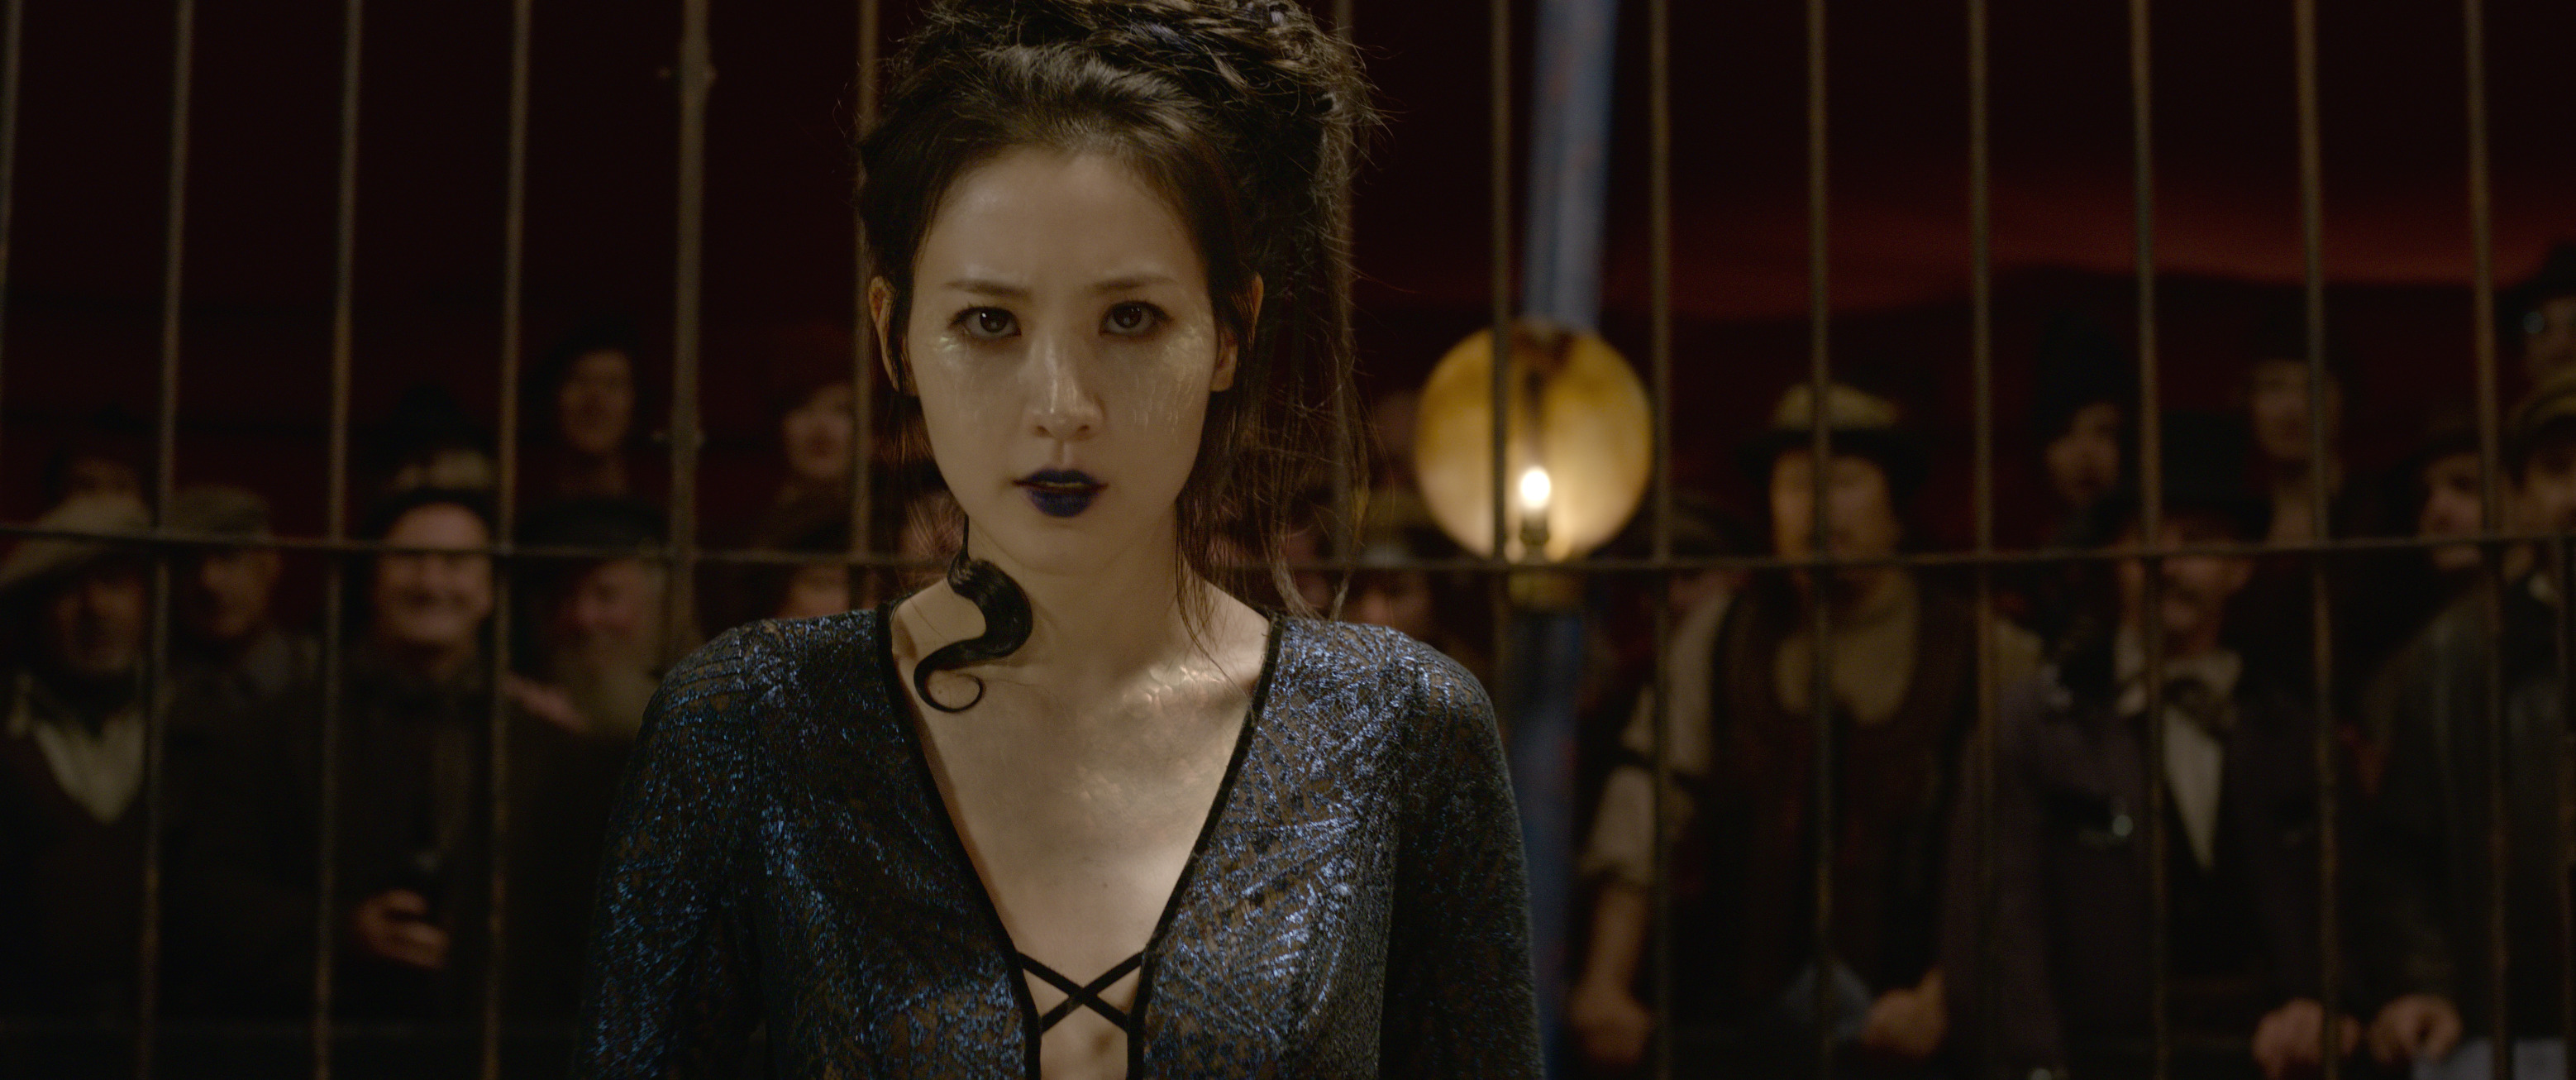 JK Rowling defends casting of South Korean actress as a snake in Fantastic Beasts sequel